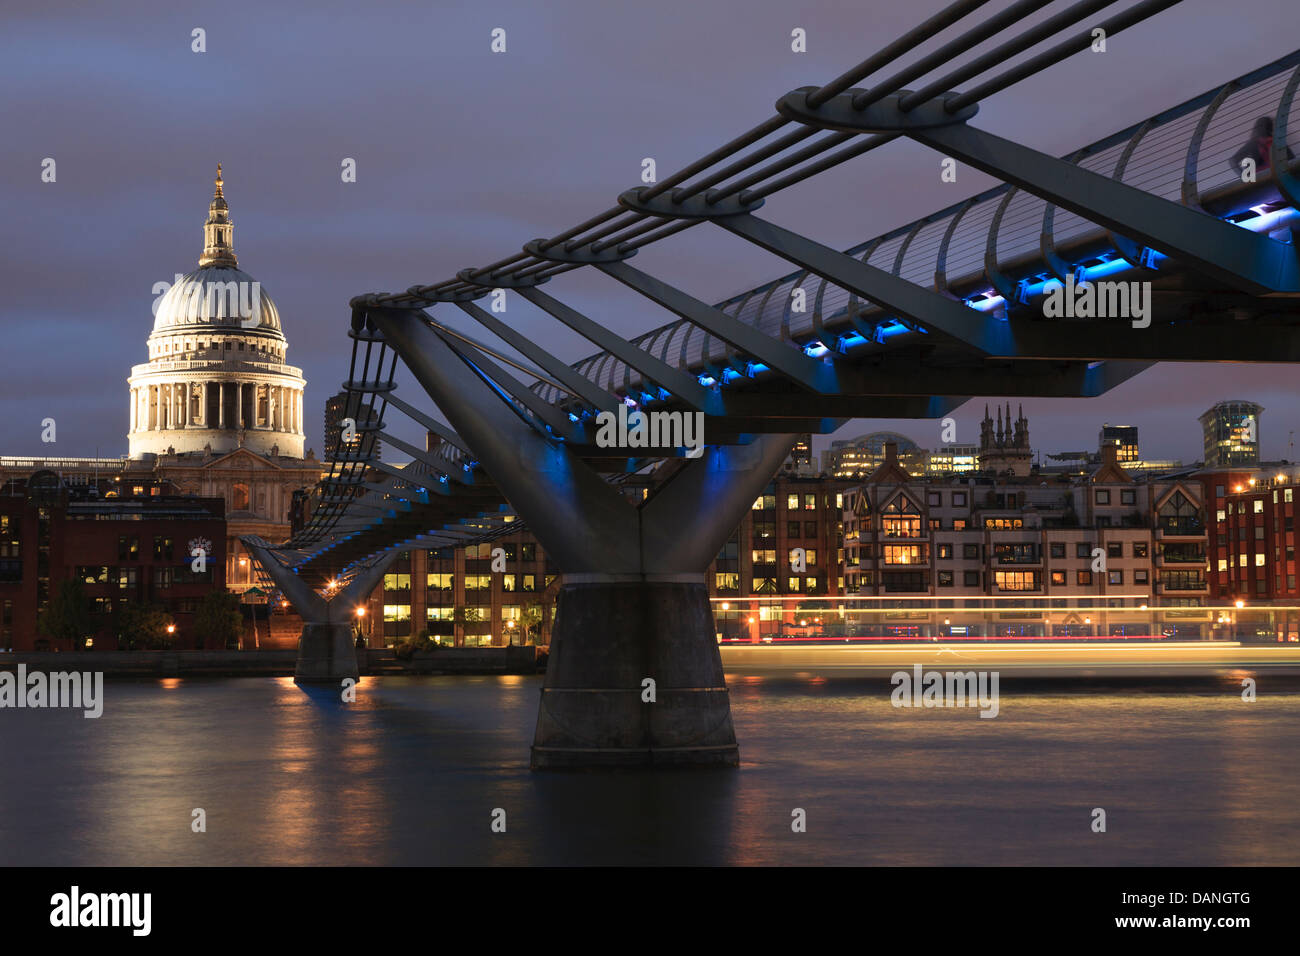 The Millennium Bridge, officially known as the London Millennium Footbridge, St Pauls Cathedral, London, UK - Stock Image